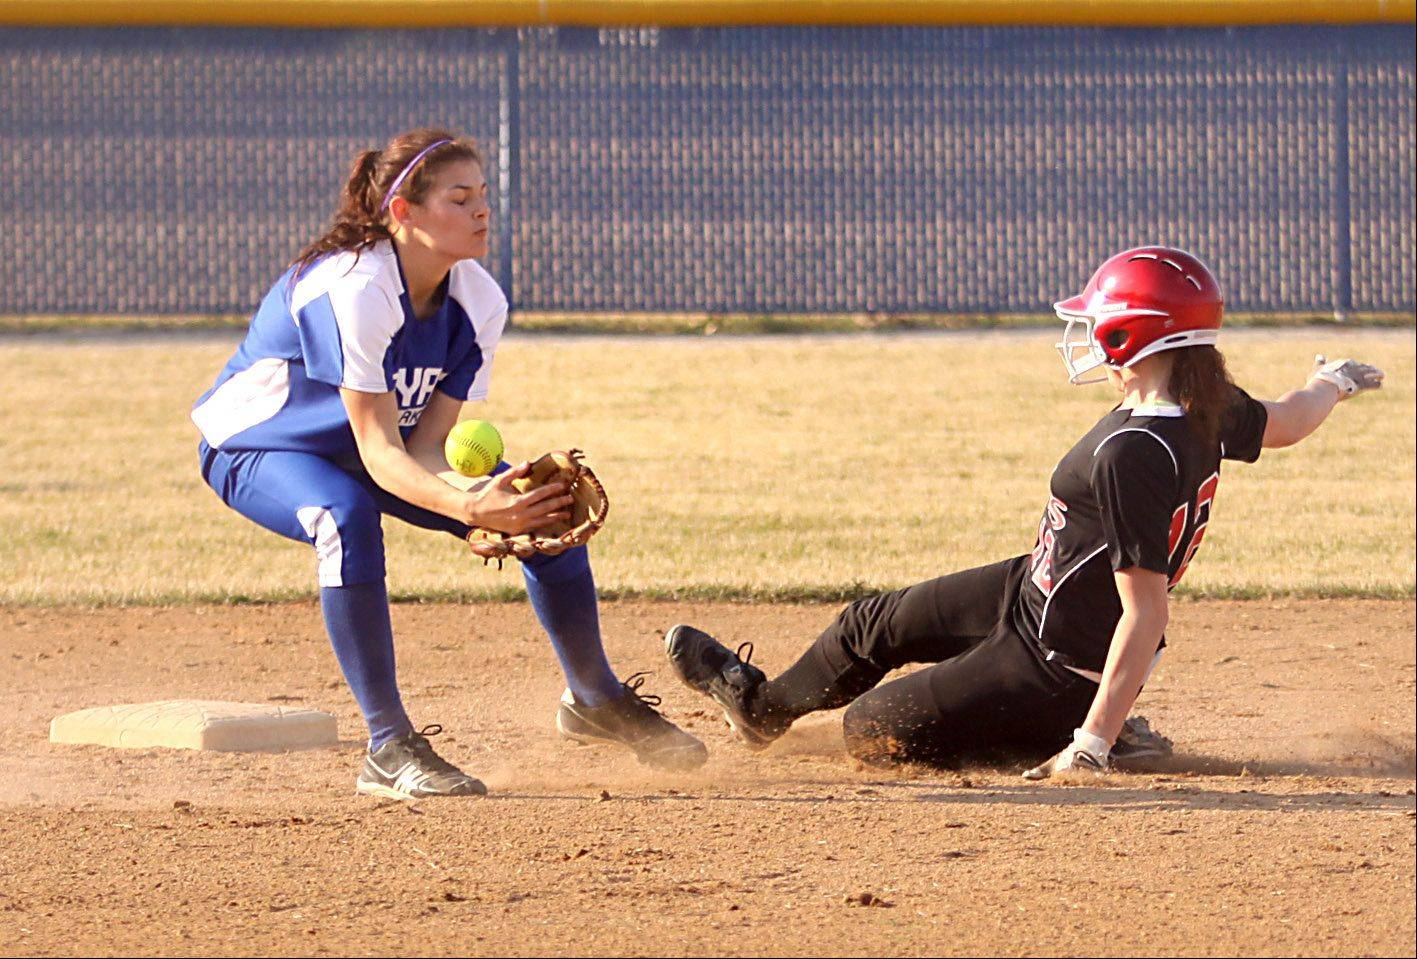 Larkin's Jaclyn Saurbaugh, left, fields the throw as Maine South's Michelle Roberts, right, slides safely into second base with a first-inning steal during a varsity softball game at Elgin on Thursday evening.